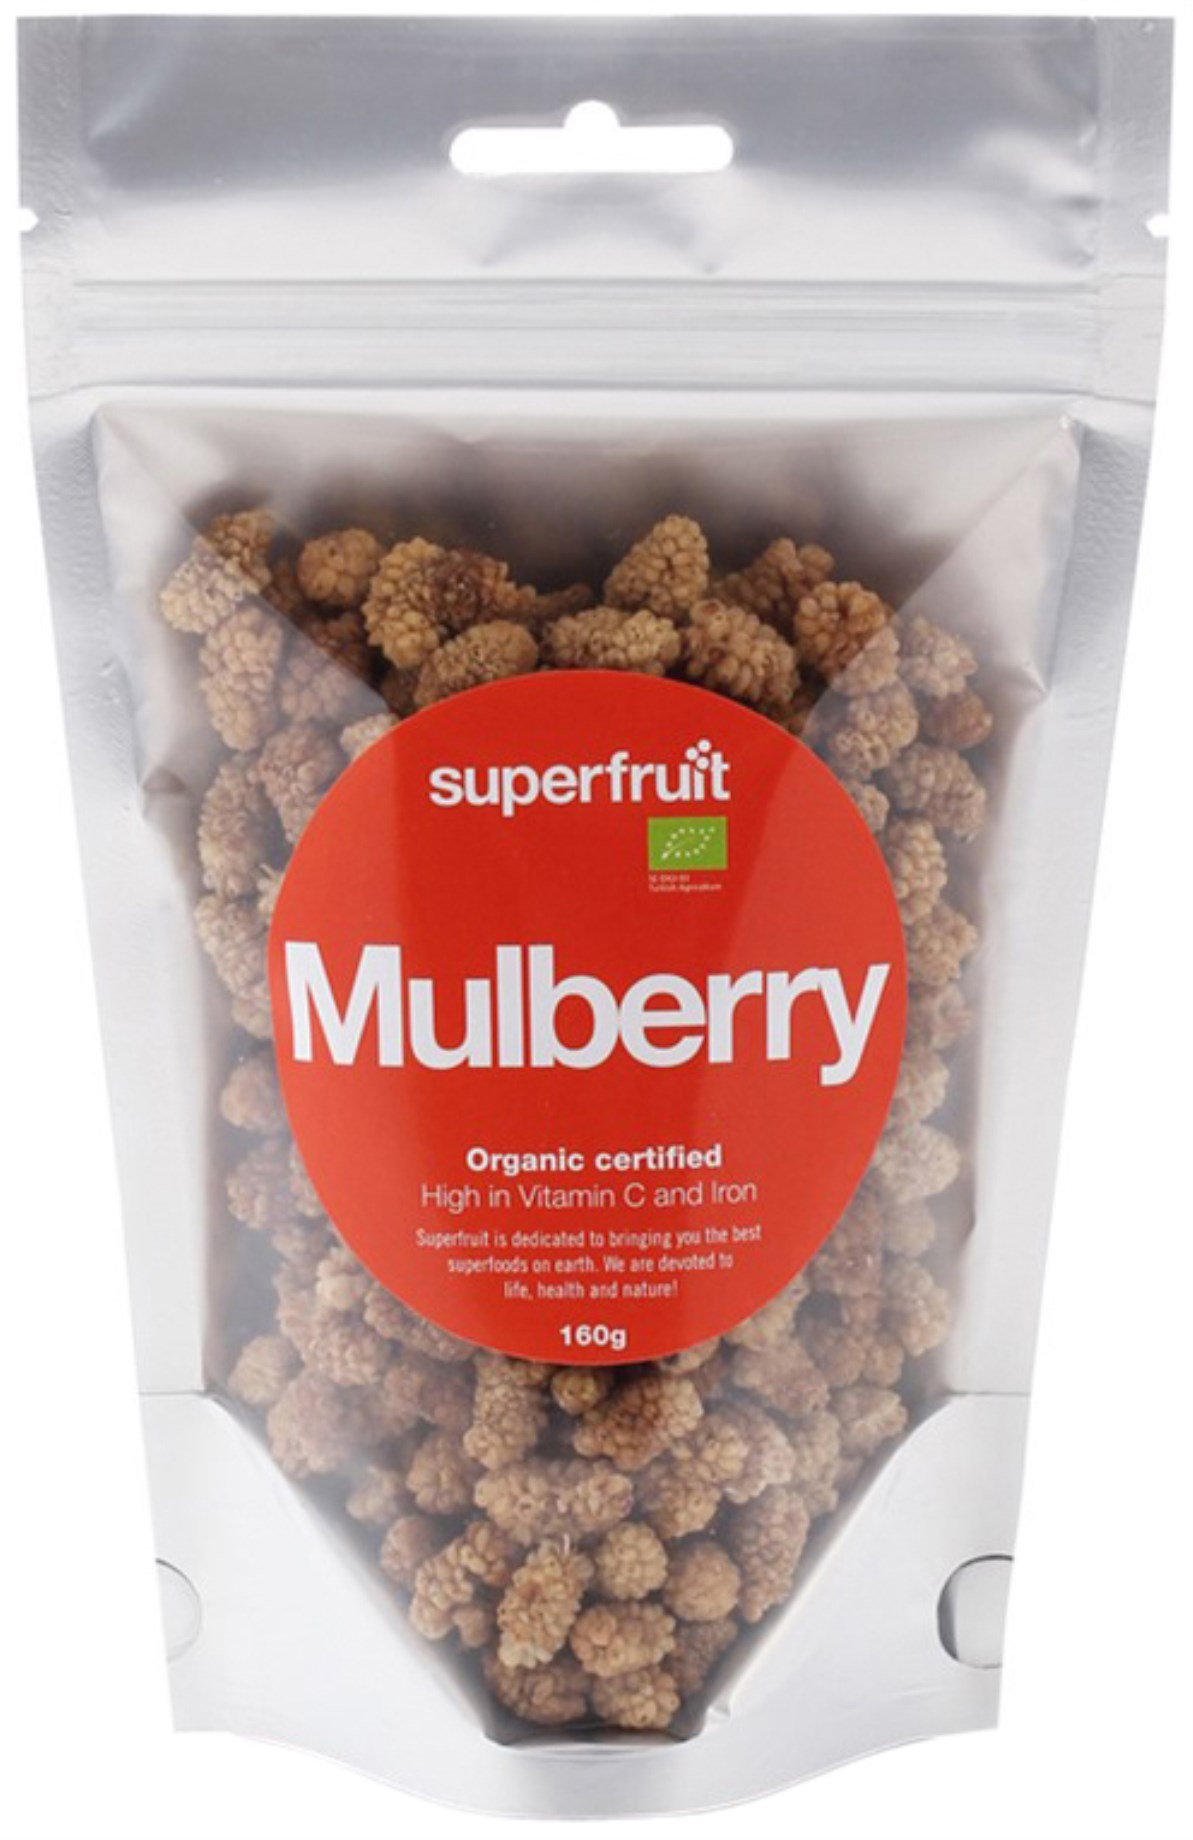 Superfruit Mullberry,  - Superfruit